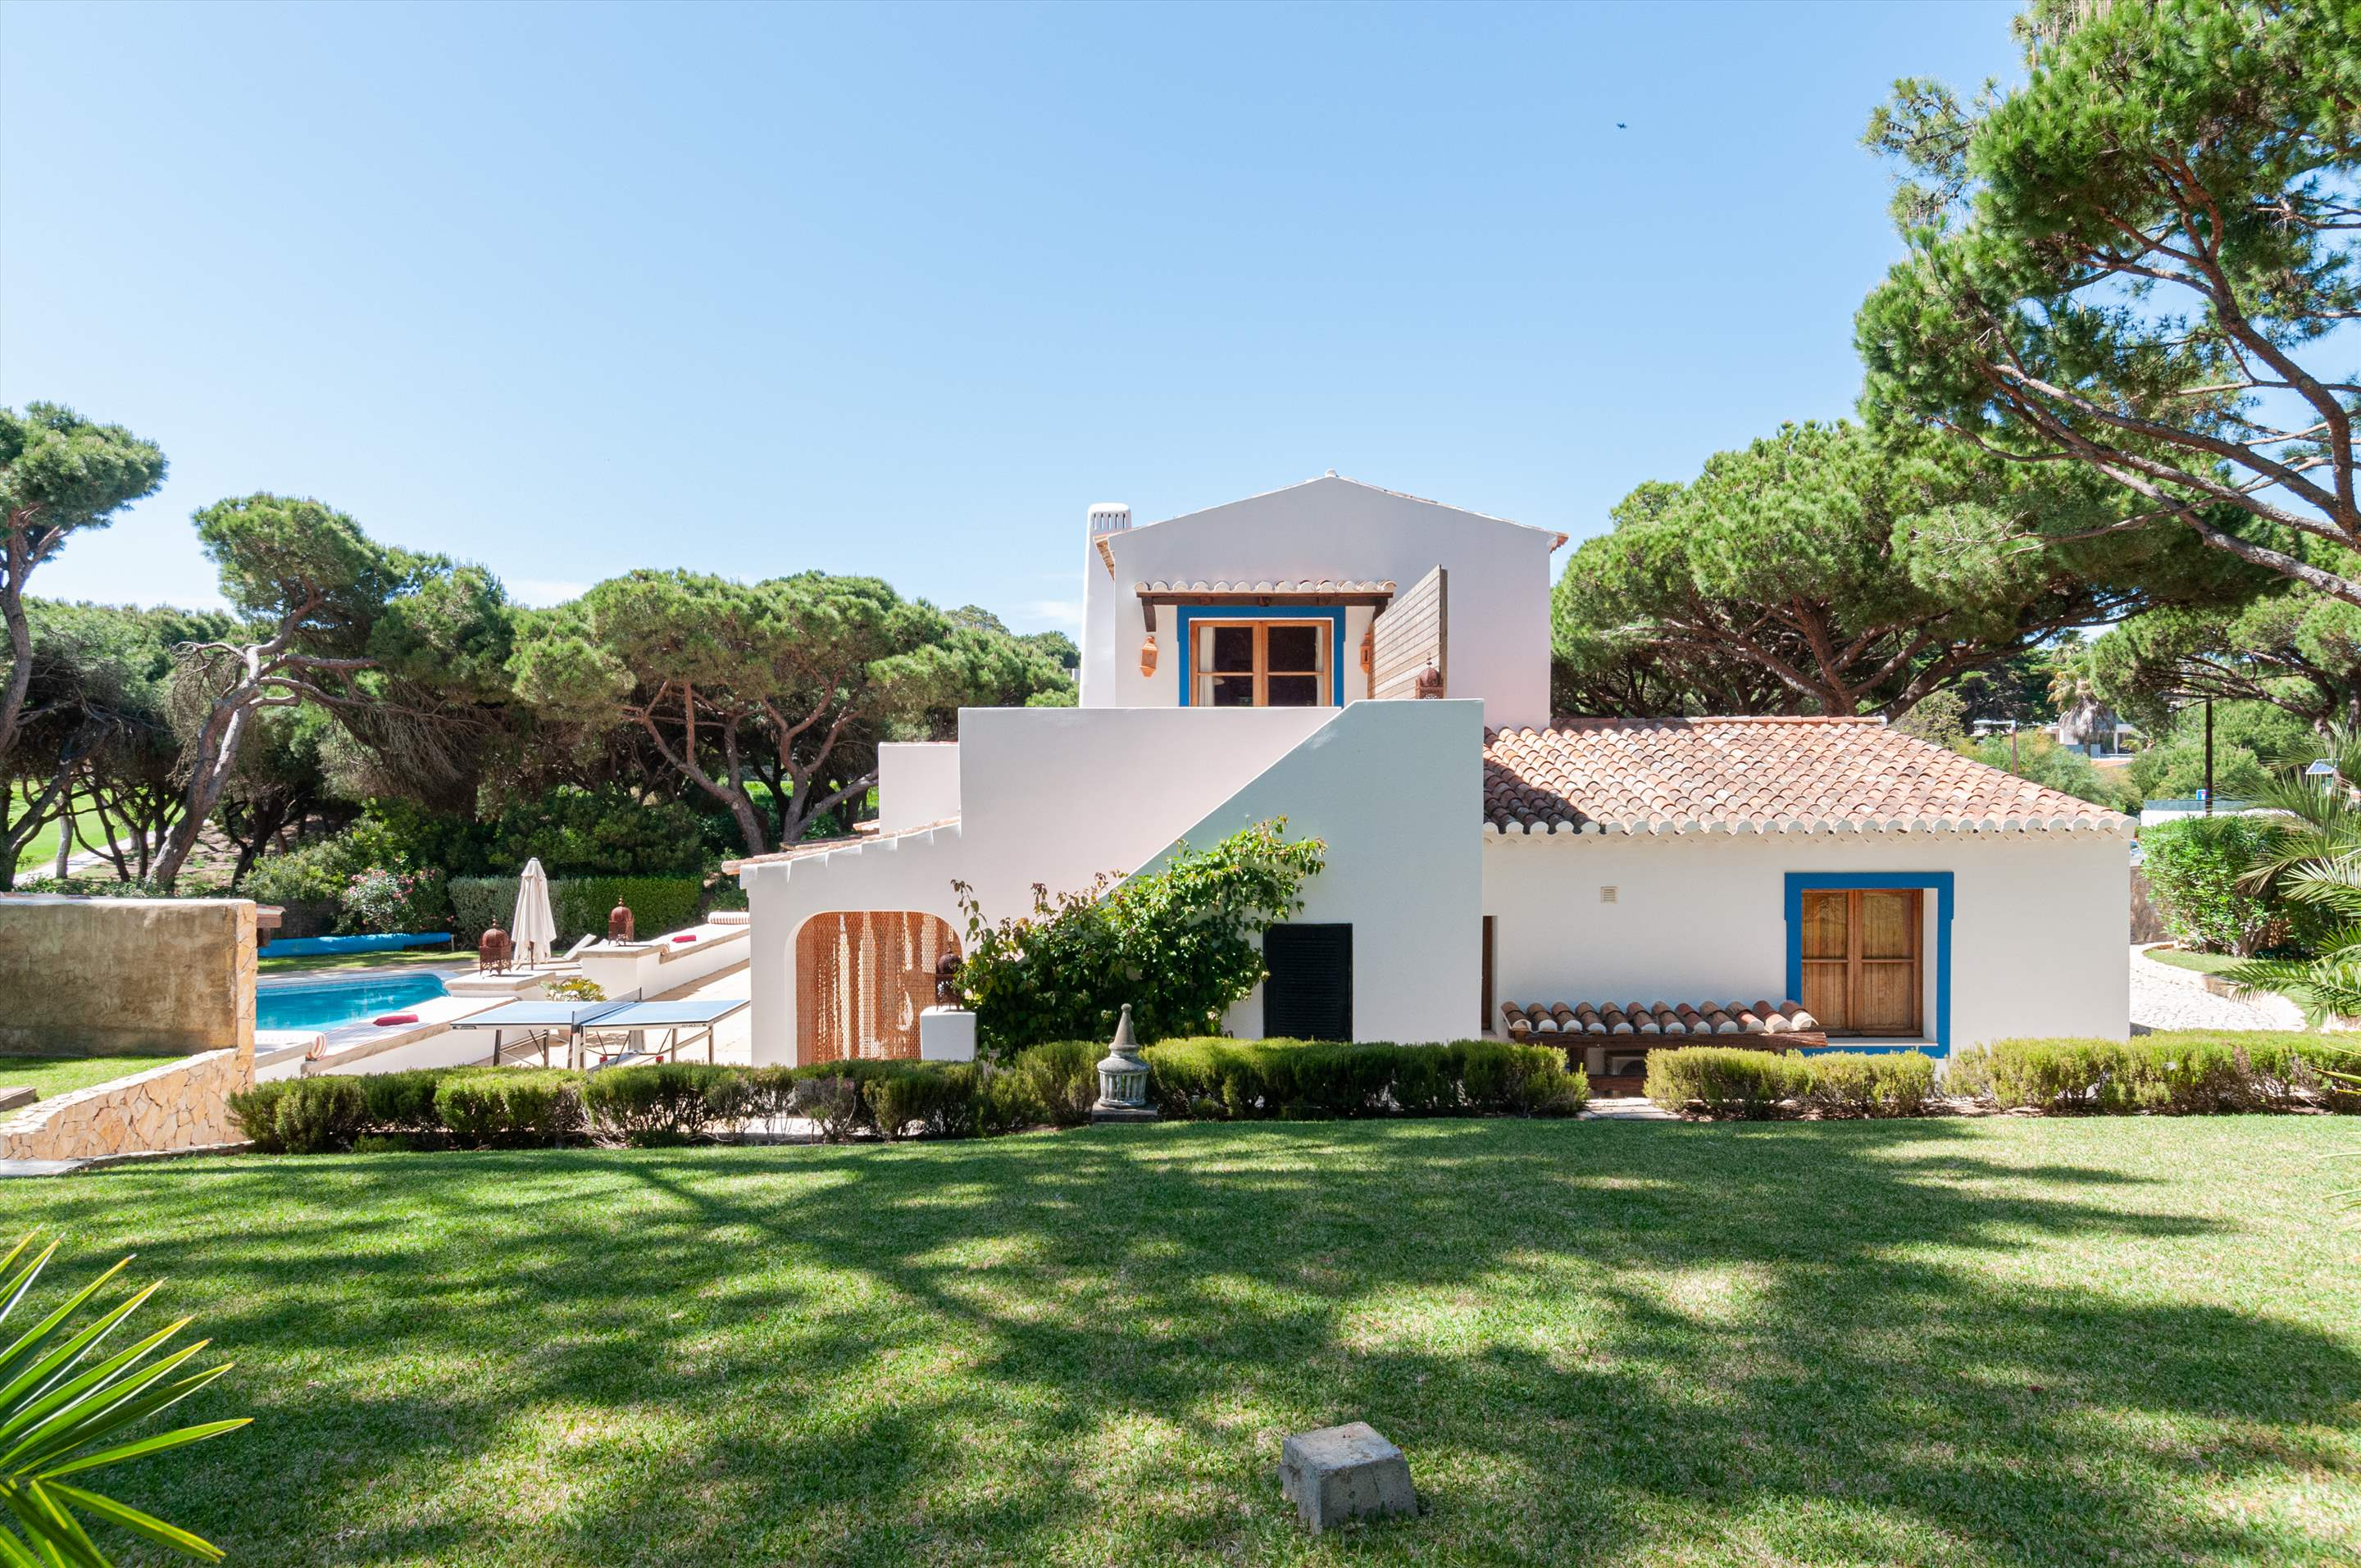 Villa Cristofina, 5 Bedroom, 5 bedroom villa in Vale do Lobo, Algarve Photo #7